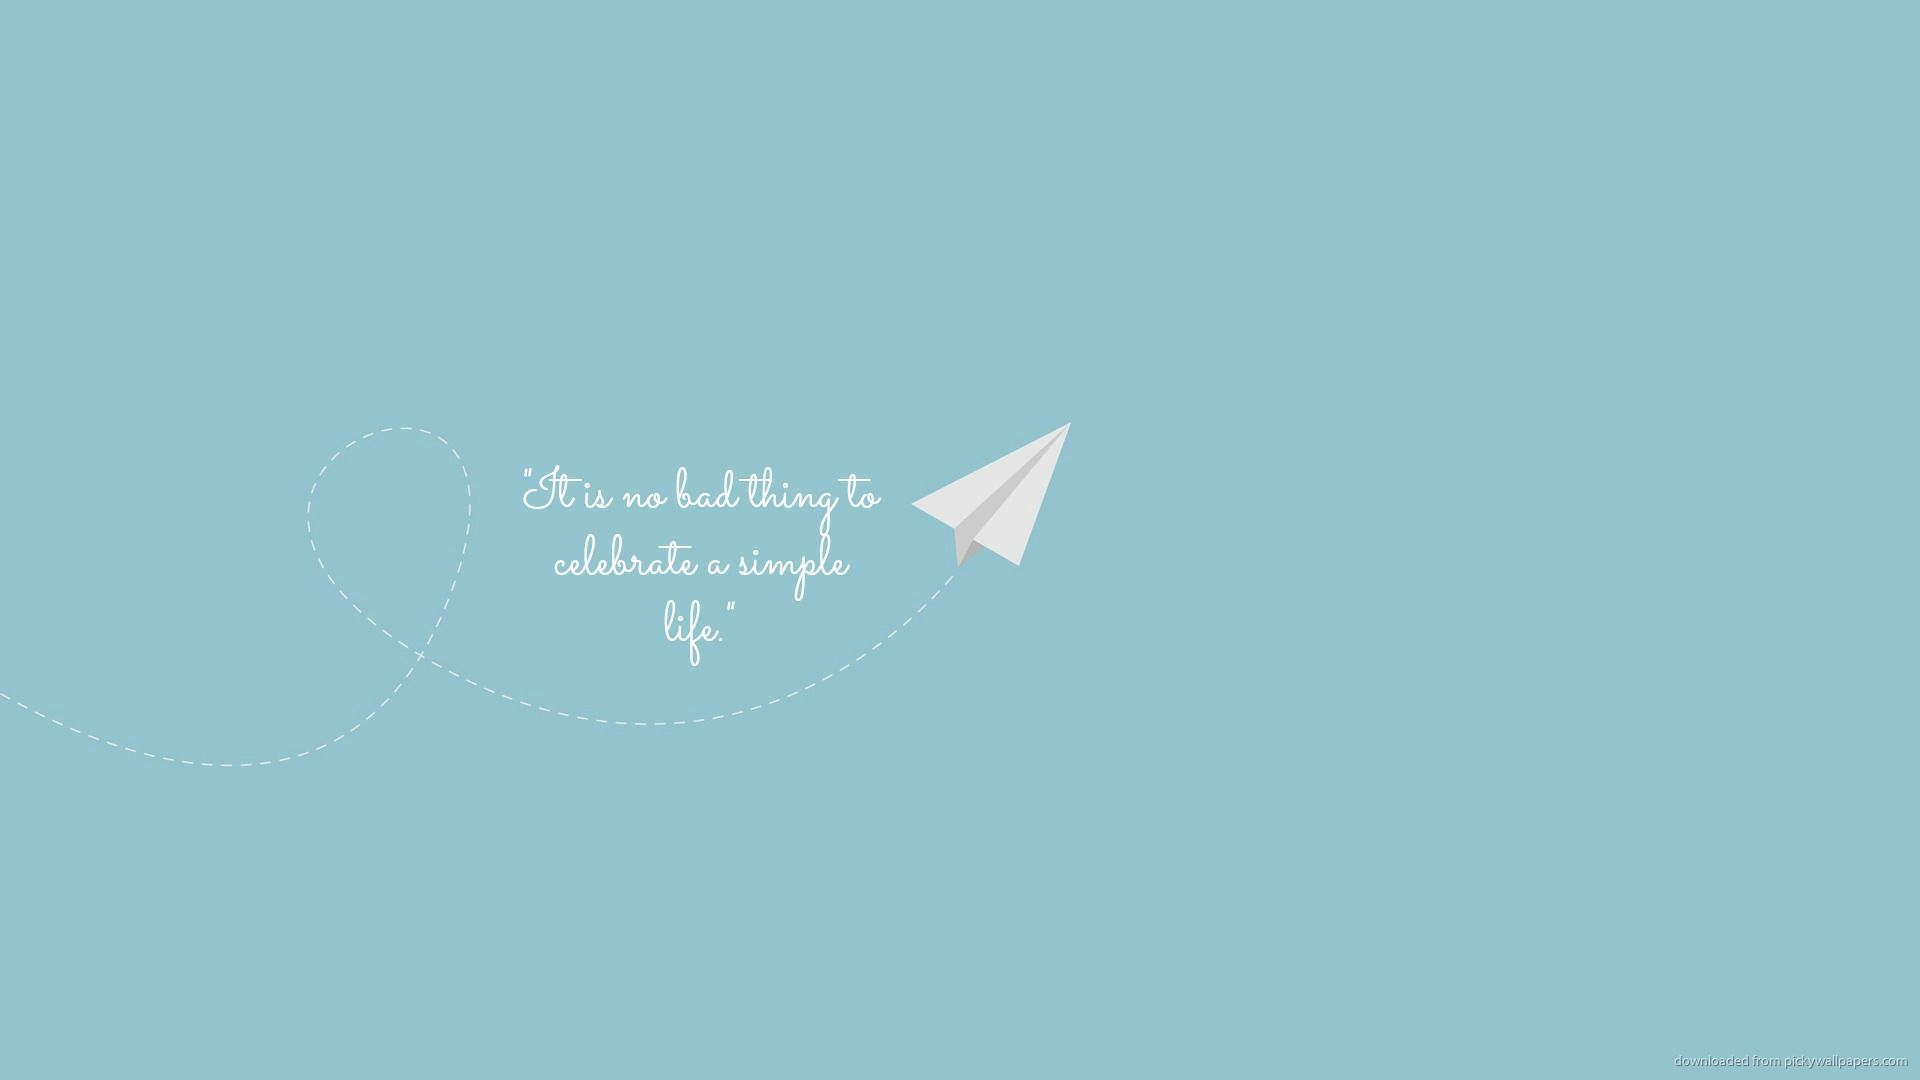 Celebrate Simplicity Inspirational Quotes Wallpapers